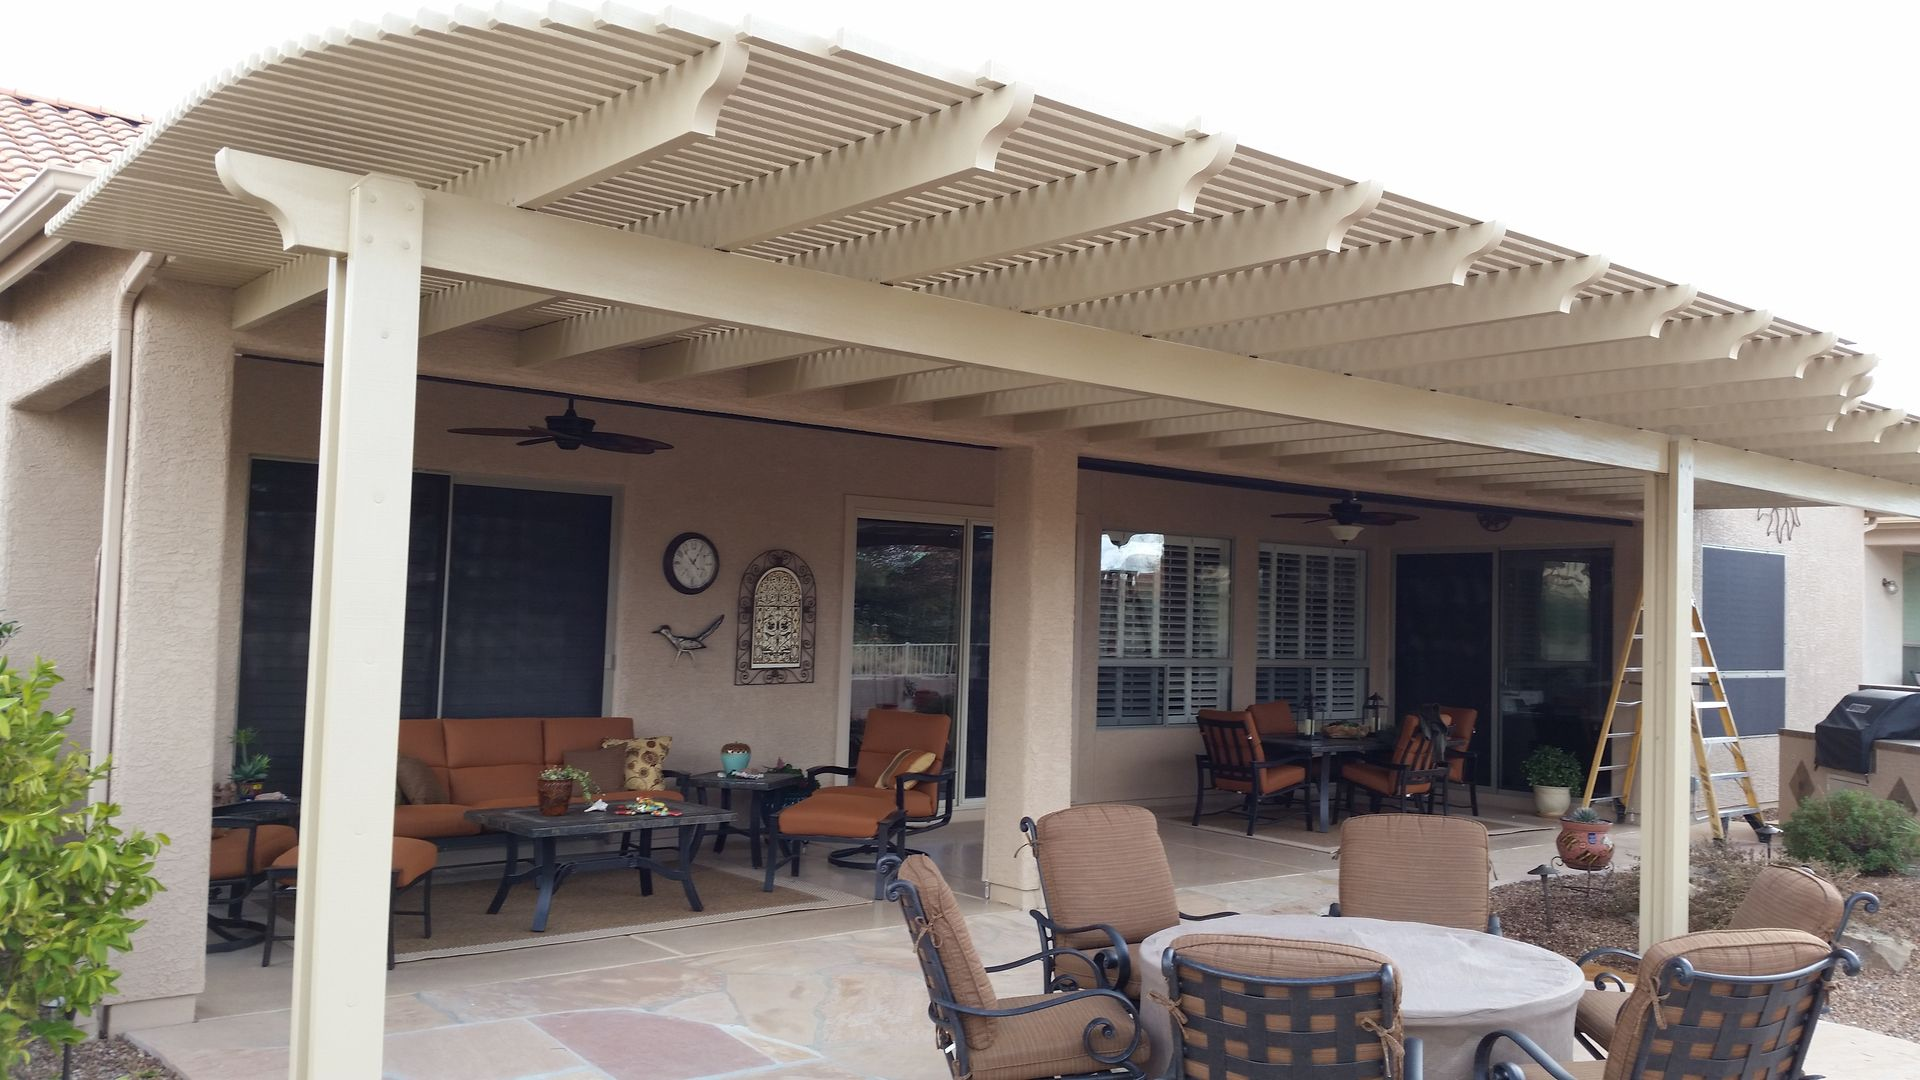 alumacovers for ca covers patio awning riverside california aluminum metal home patios southern awnings